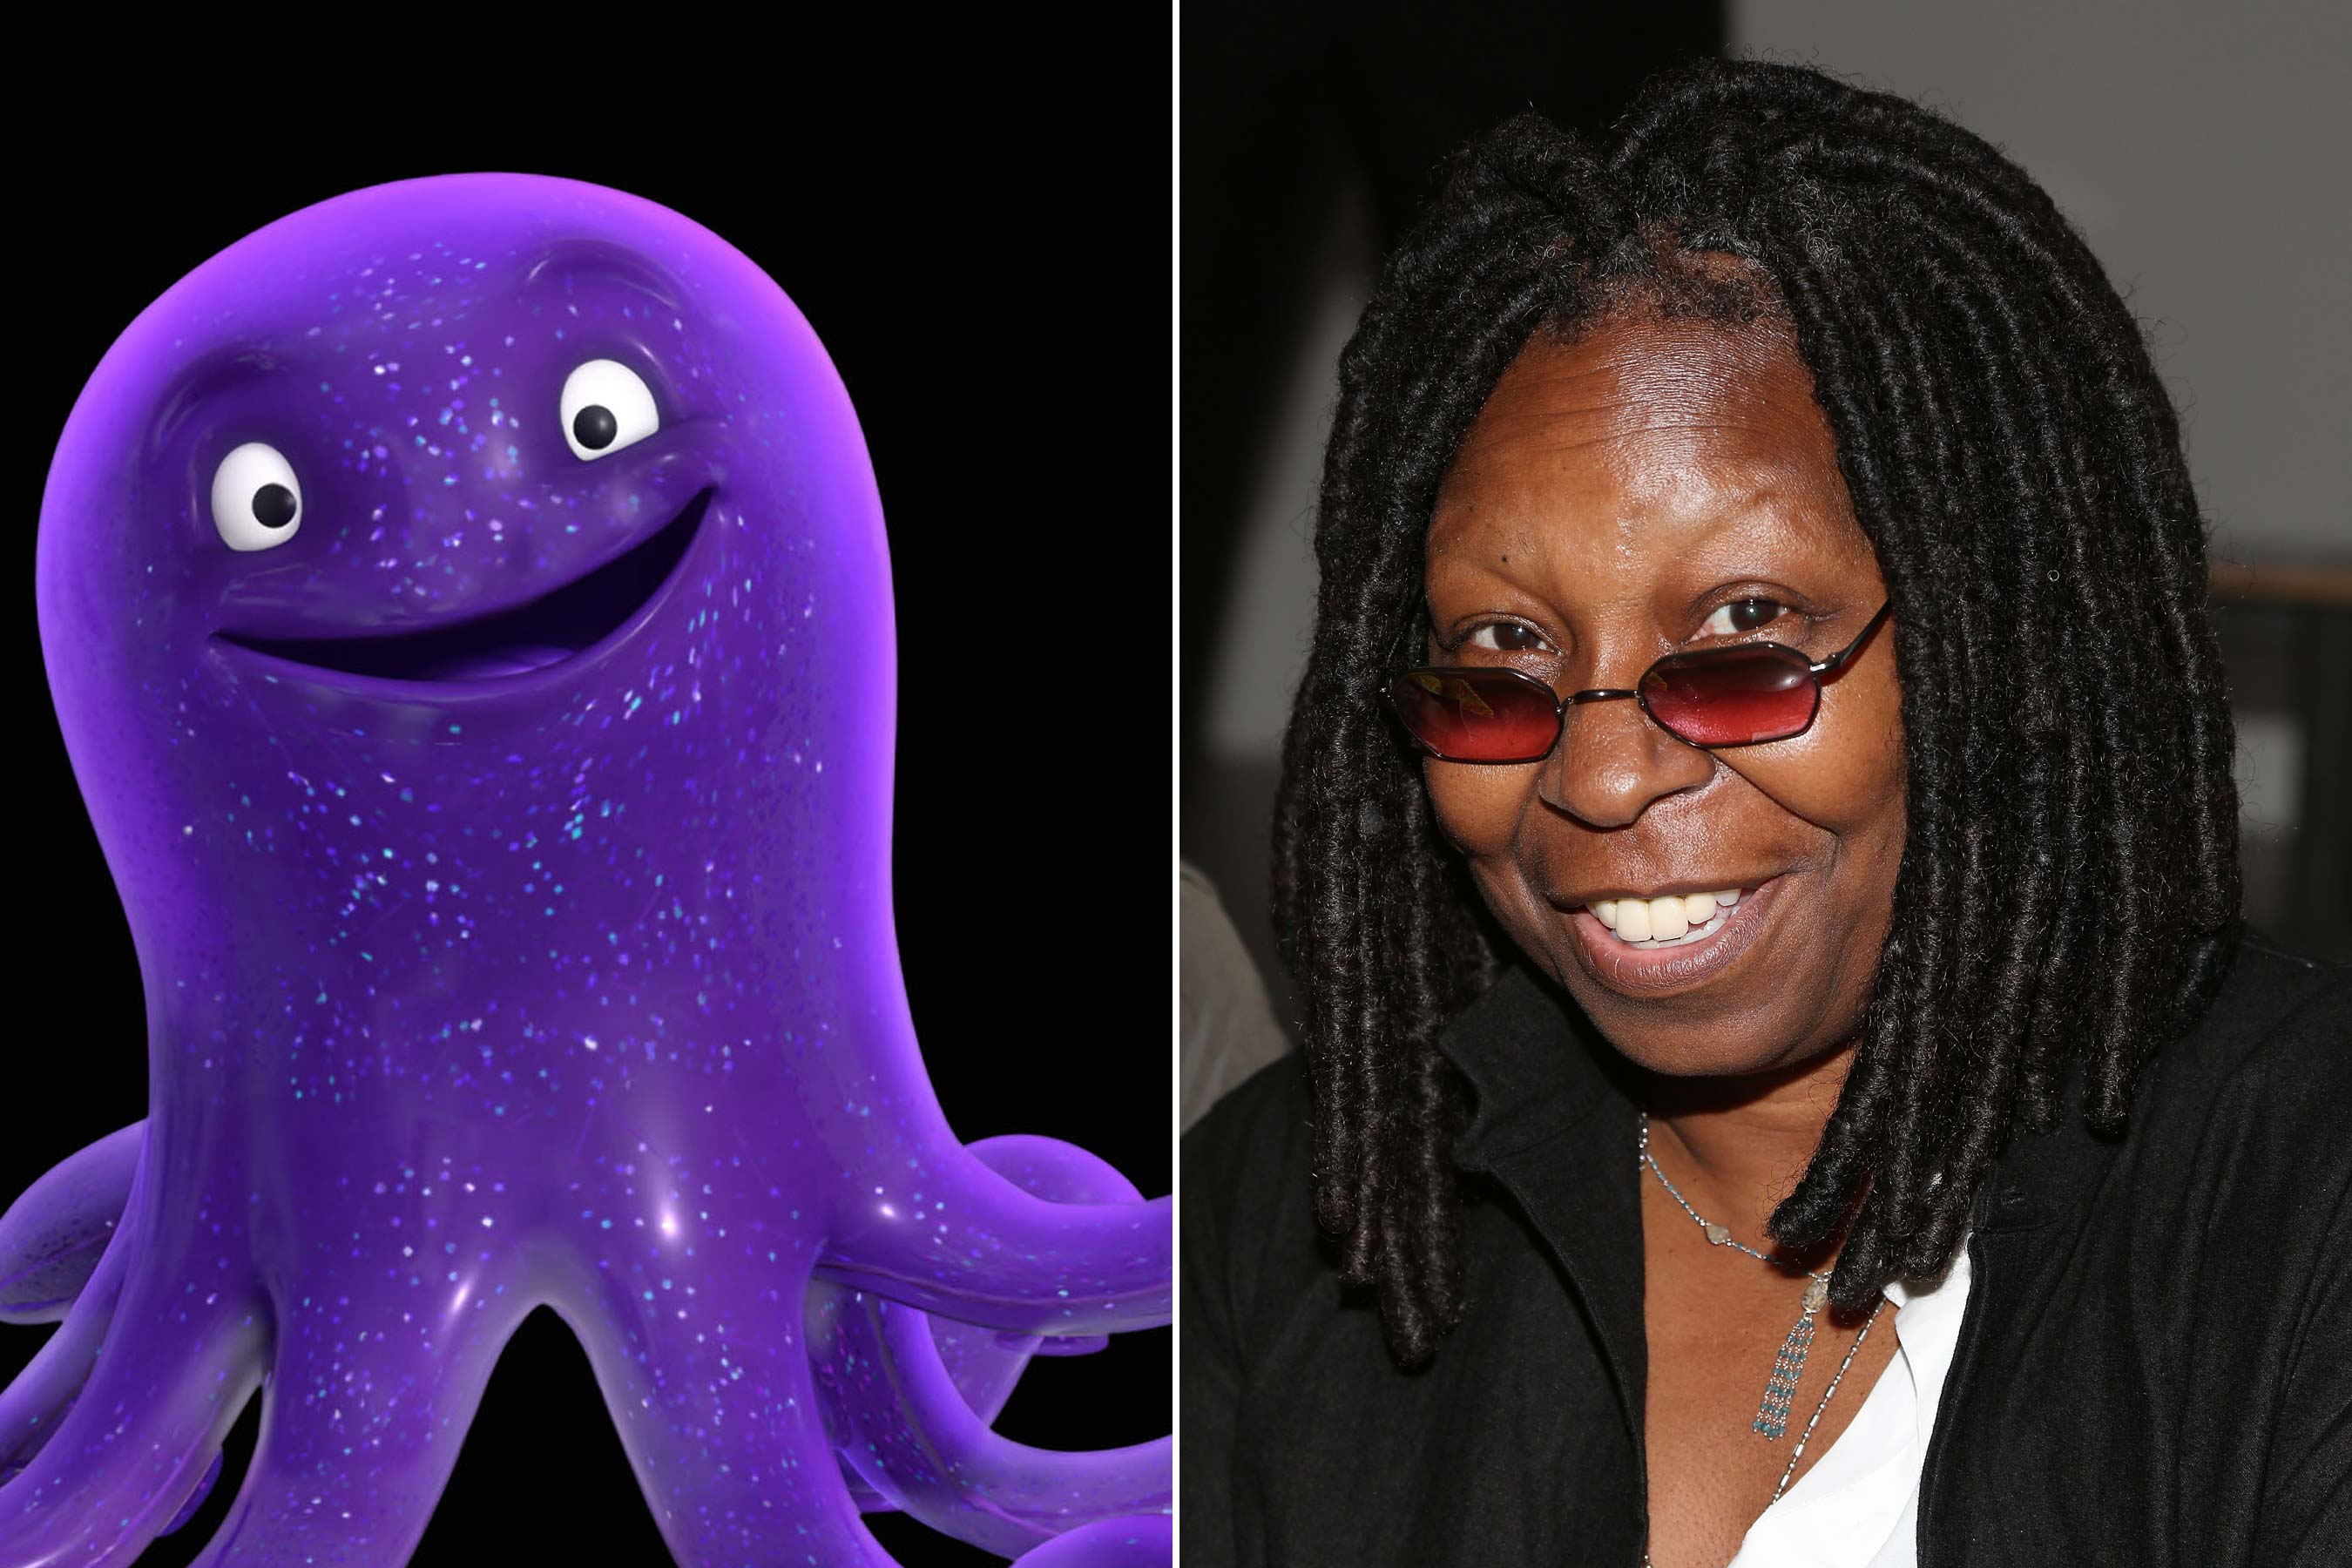 <strong>Stretch - Whoopi Goldberg (Toy Story 3)</strong>